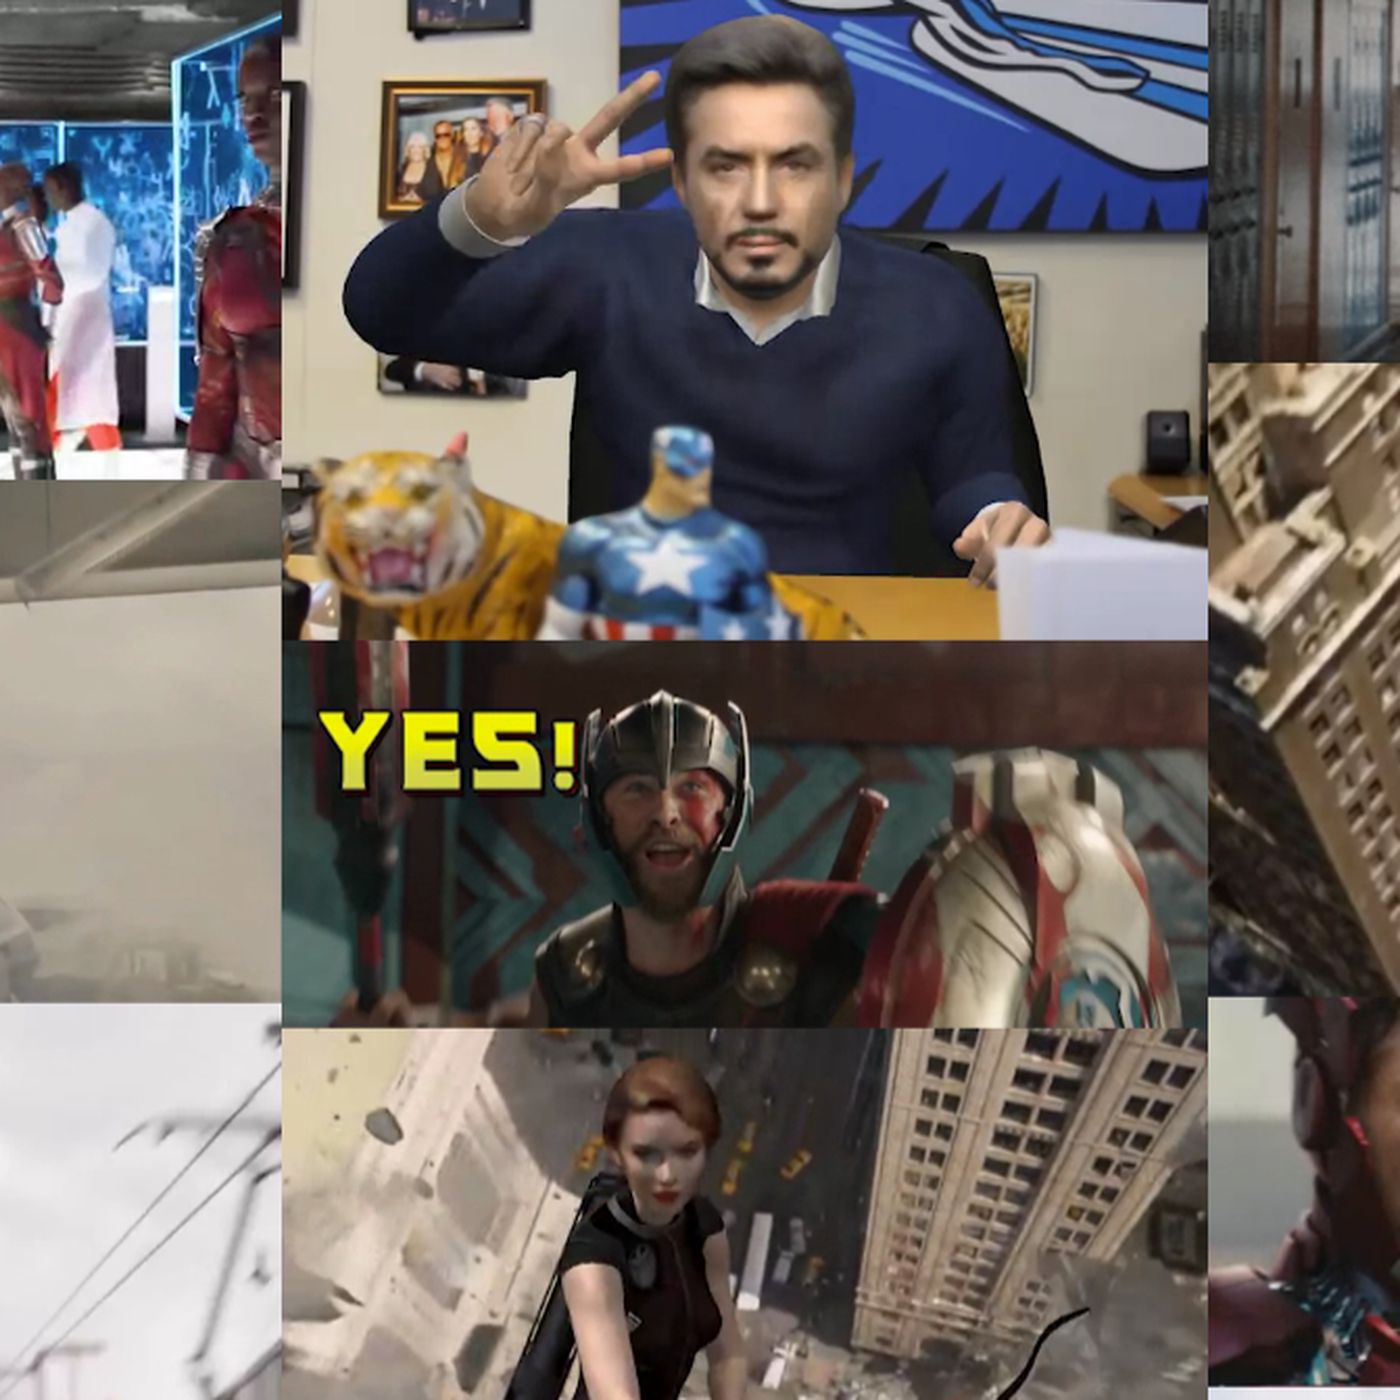 You can become an Avenger with this GIF maker - The Verge